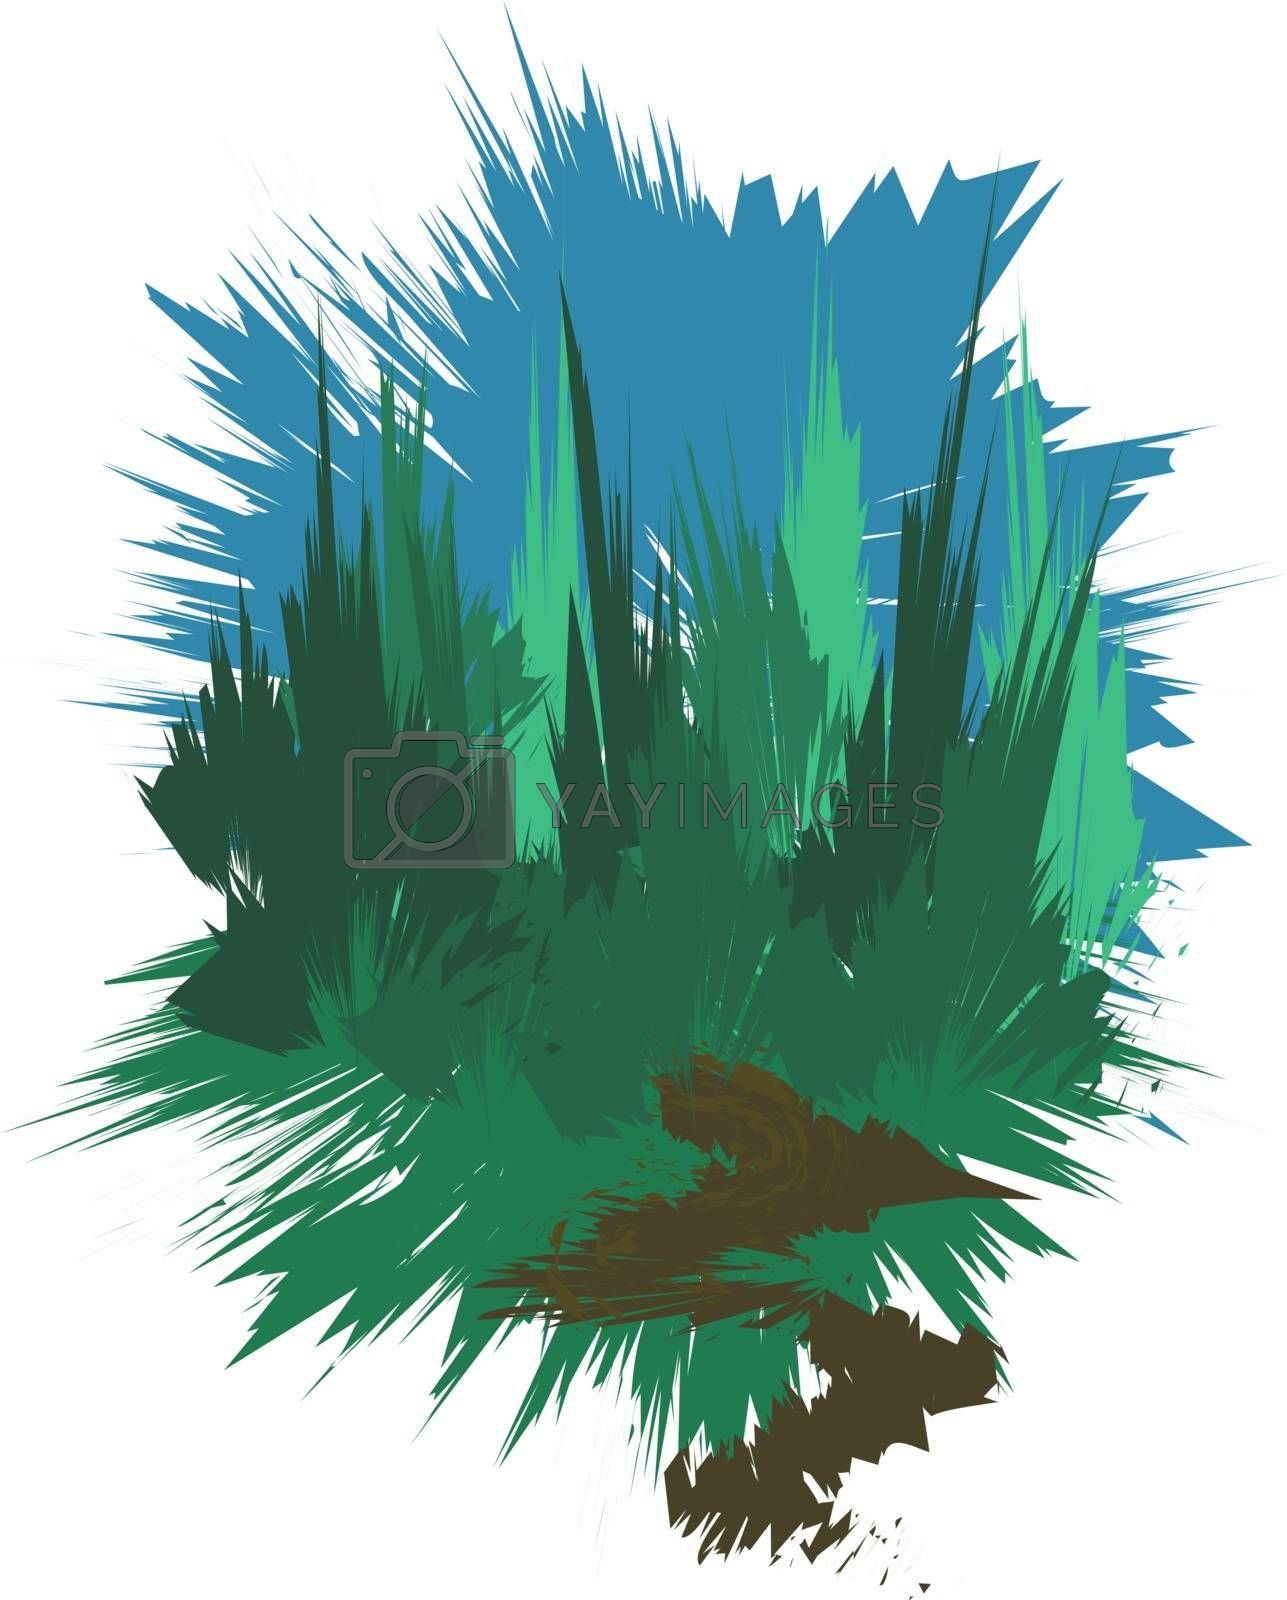 Image of pine and spruce forest, stylized as a paint stain